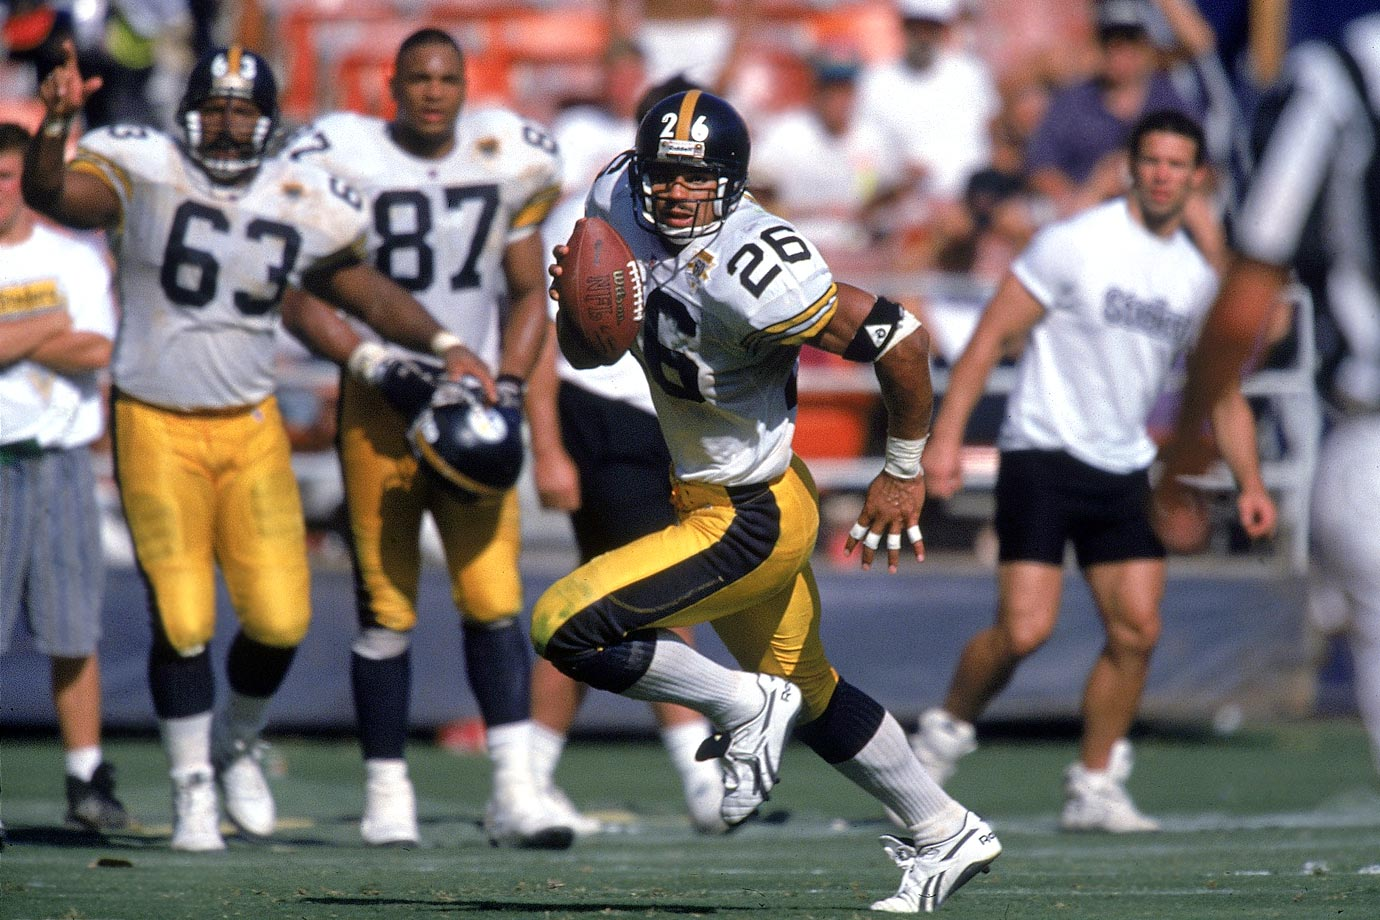 Woodson was a ballhawk and premier athlete. When he was healthy and on the field, Woodson was better than just about every defensive back to play the game. His Credentials: 11-time Pro Bowl selection, eight-time All-Pro, Super Bowl XXXV champion, named to NFL's All-Decade Team for the 1990s, named to NFL's 75th anniversary team, 1993 NFL Defensive Player of the Year, third all-time in interceptions (71), ranked No. 41 on NFL's list of 100 greatest players, inducted into Hall of Fame in 2009. Others in Consideration: Terrell Suggs (2003, Ravens); Willie Anderson (1996, Bengals); Jerome Bettis (1993, Rams); Herman Moore (1991, Lions); Marcus Allen (1982, Raiders); Isiah Robertson (1971, Rams)